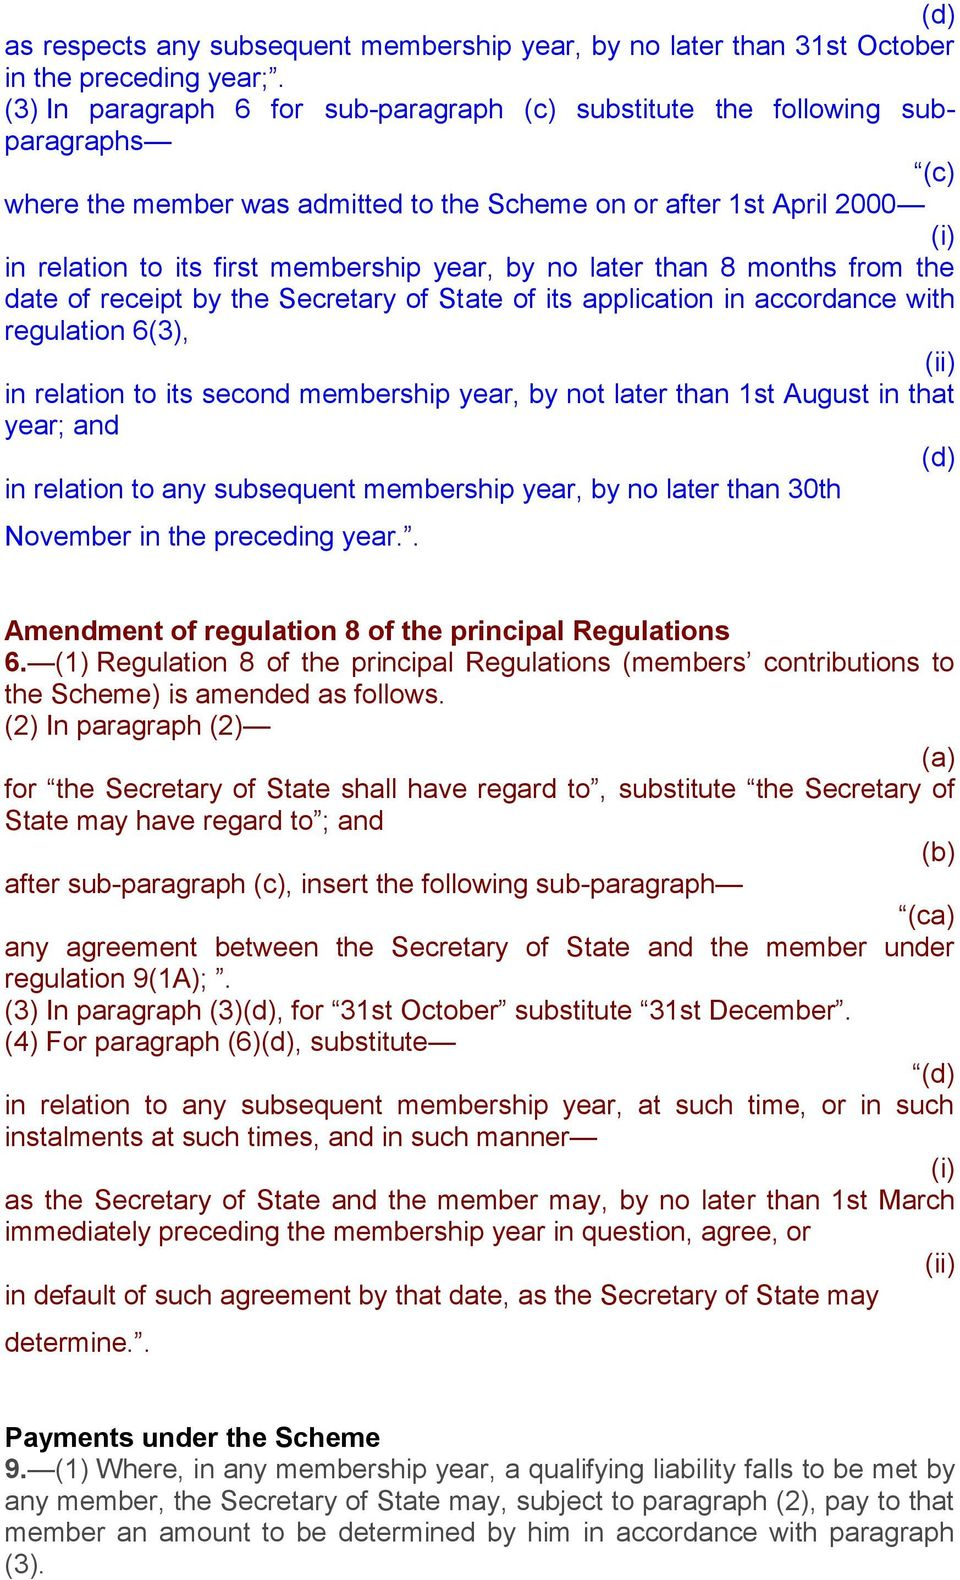 later than 8 months from the date of receipt by the Secretary of State of its application in accordance with regulation 6(3), in relation to its second membership year, by not later than 1st August